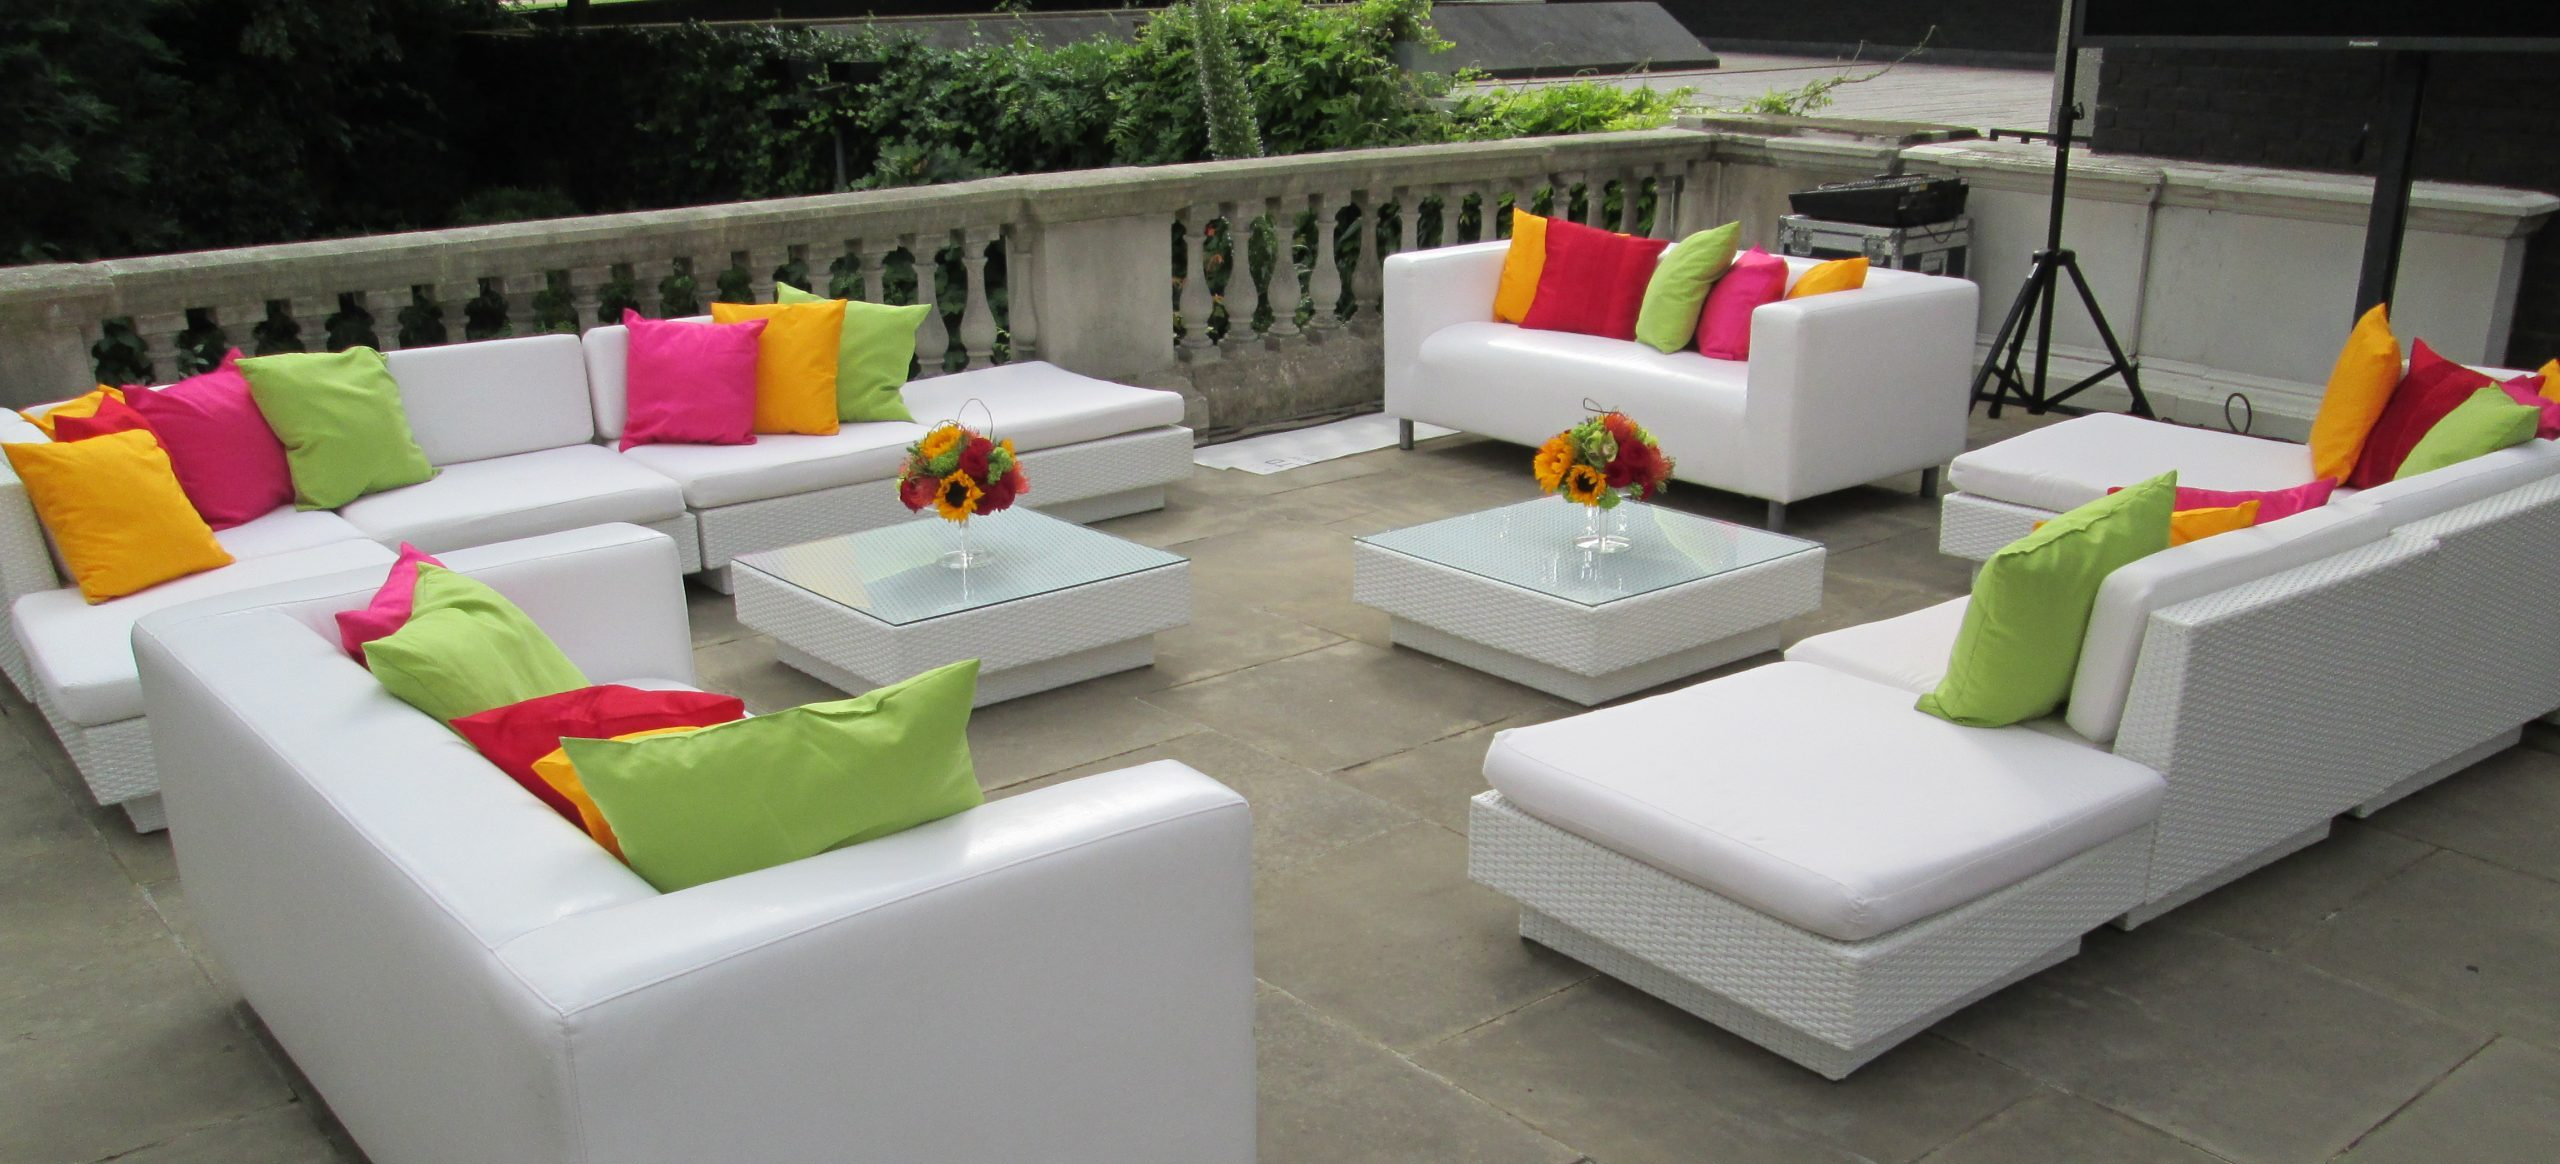 funky furniture hire: white sofas and bright scatter cushions